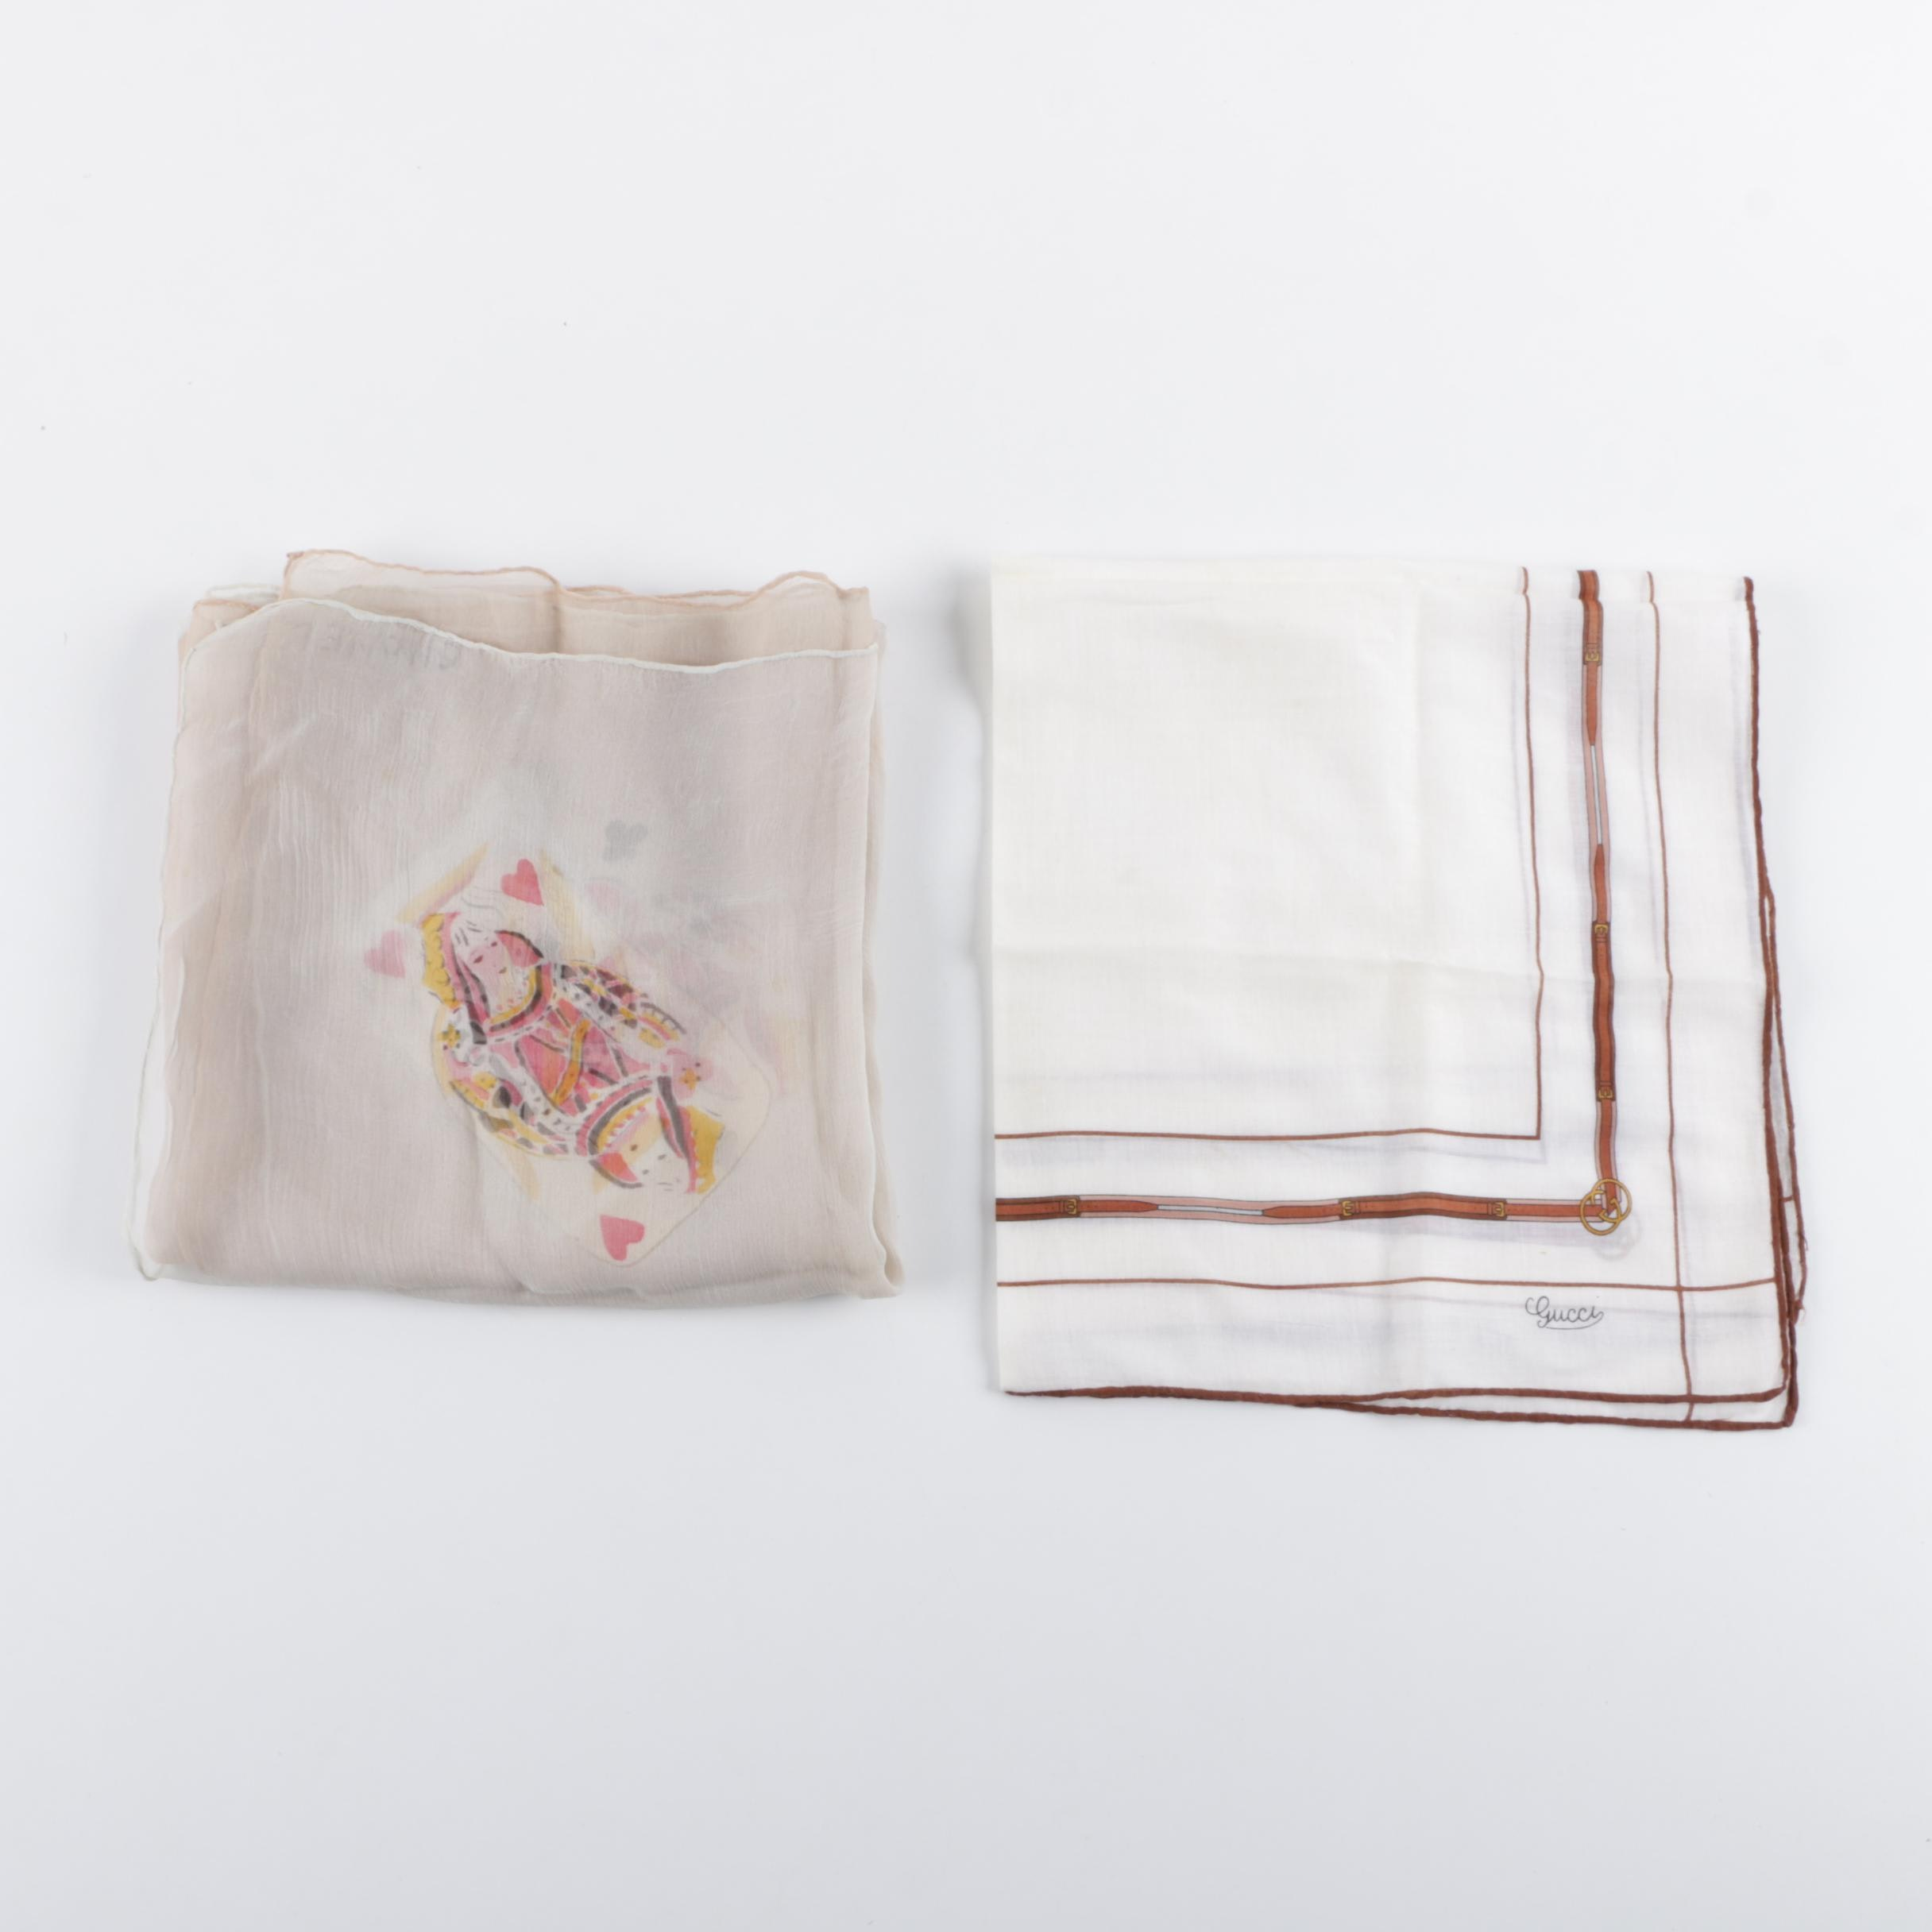 Vintage Chanel and Gucci Silk Neck Scarves